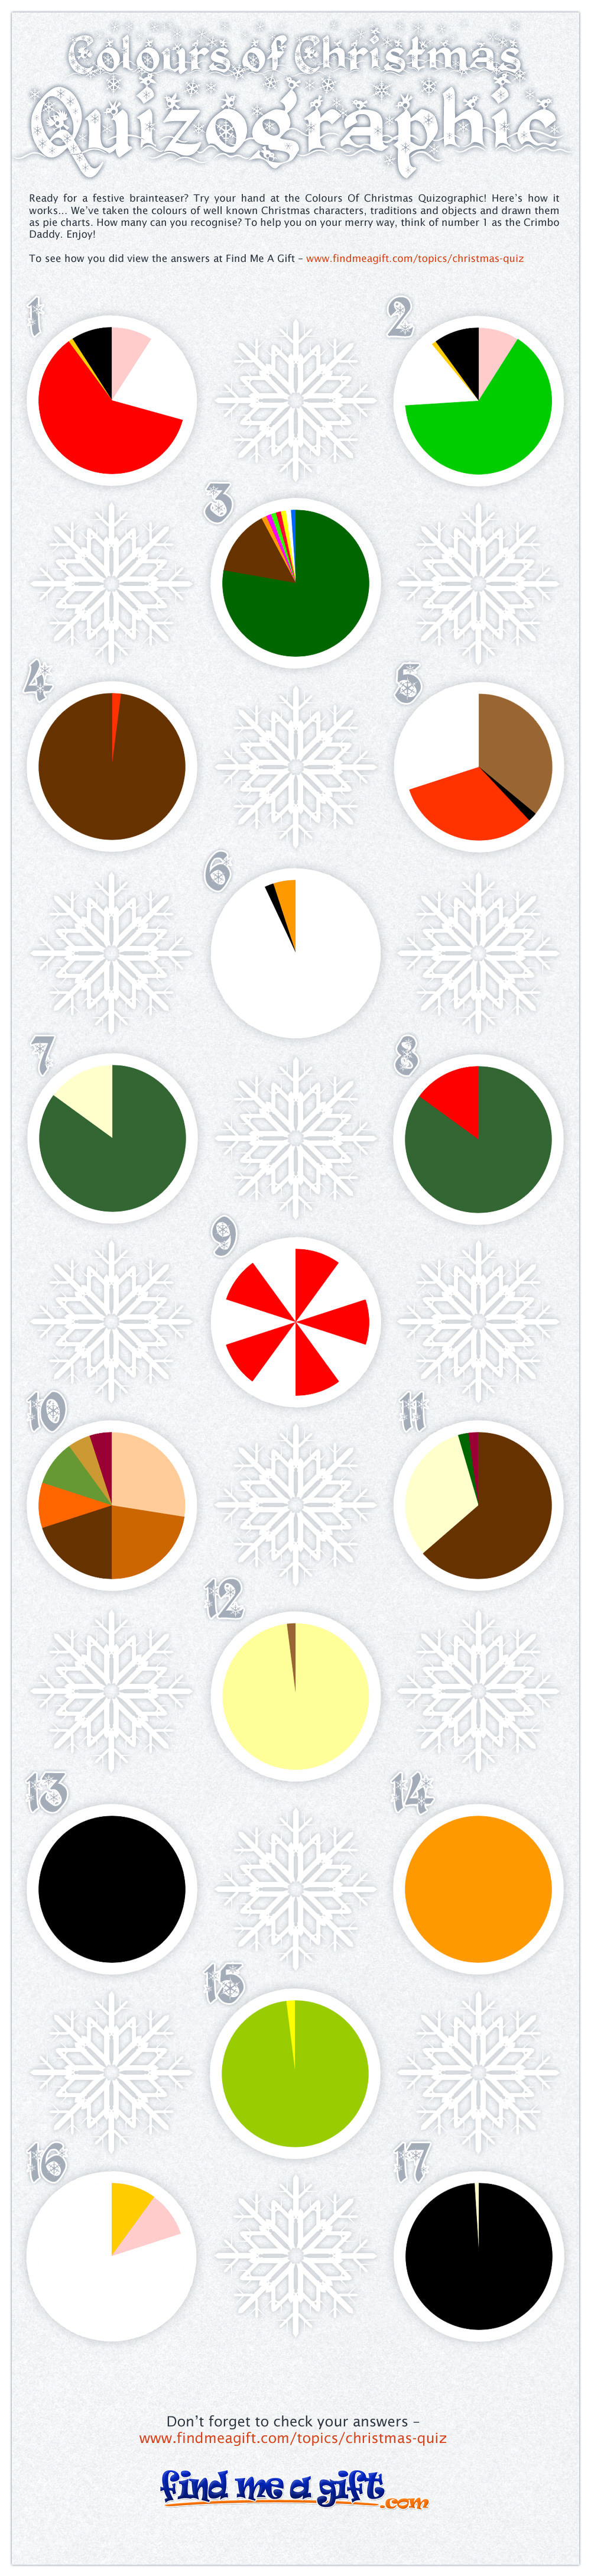 Colours of Christmas Quizographic